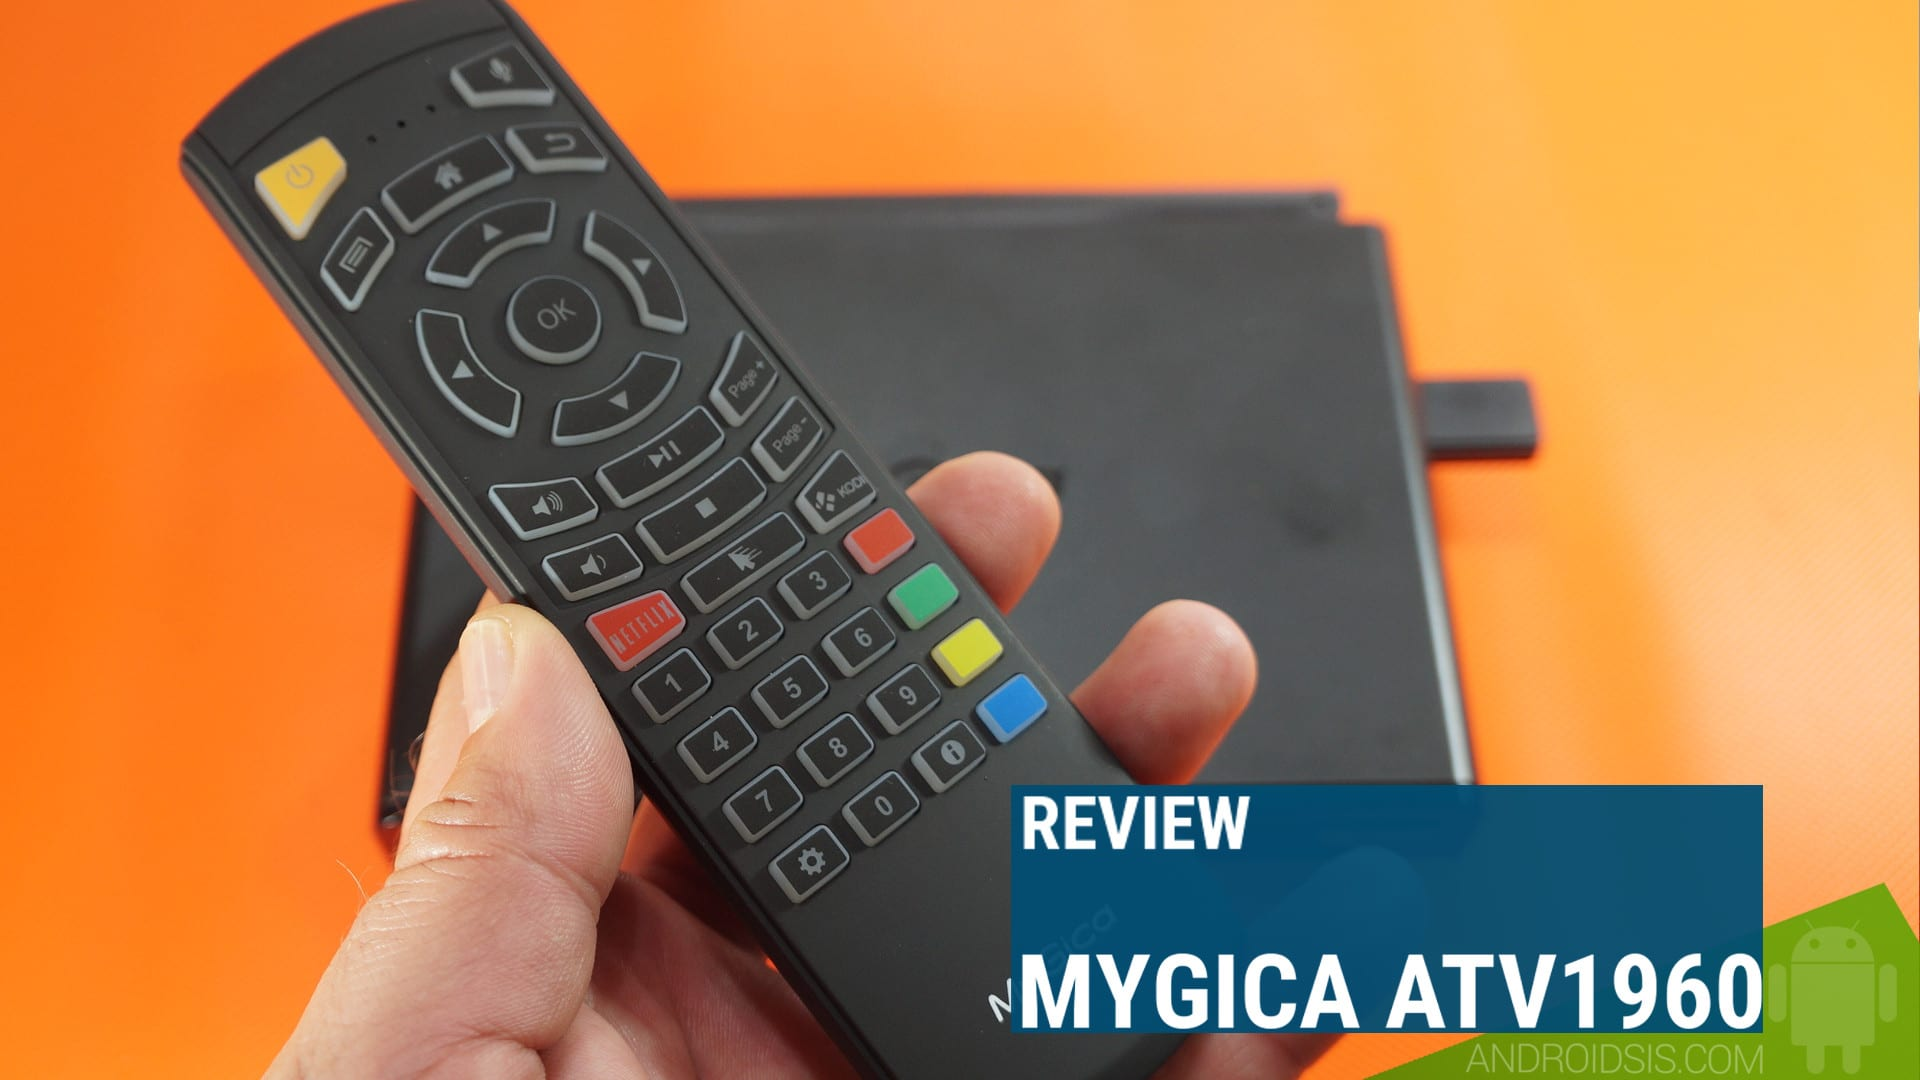 Review en Español del MyGica ATV1960